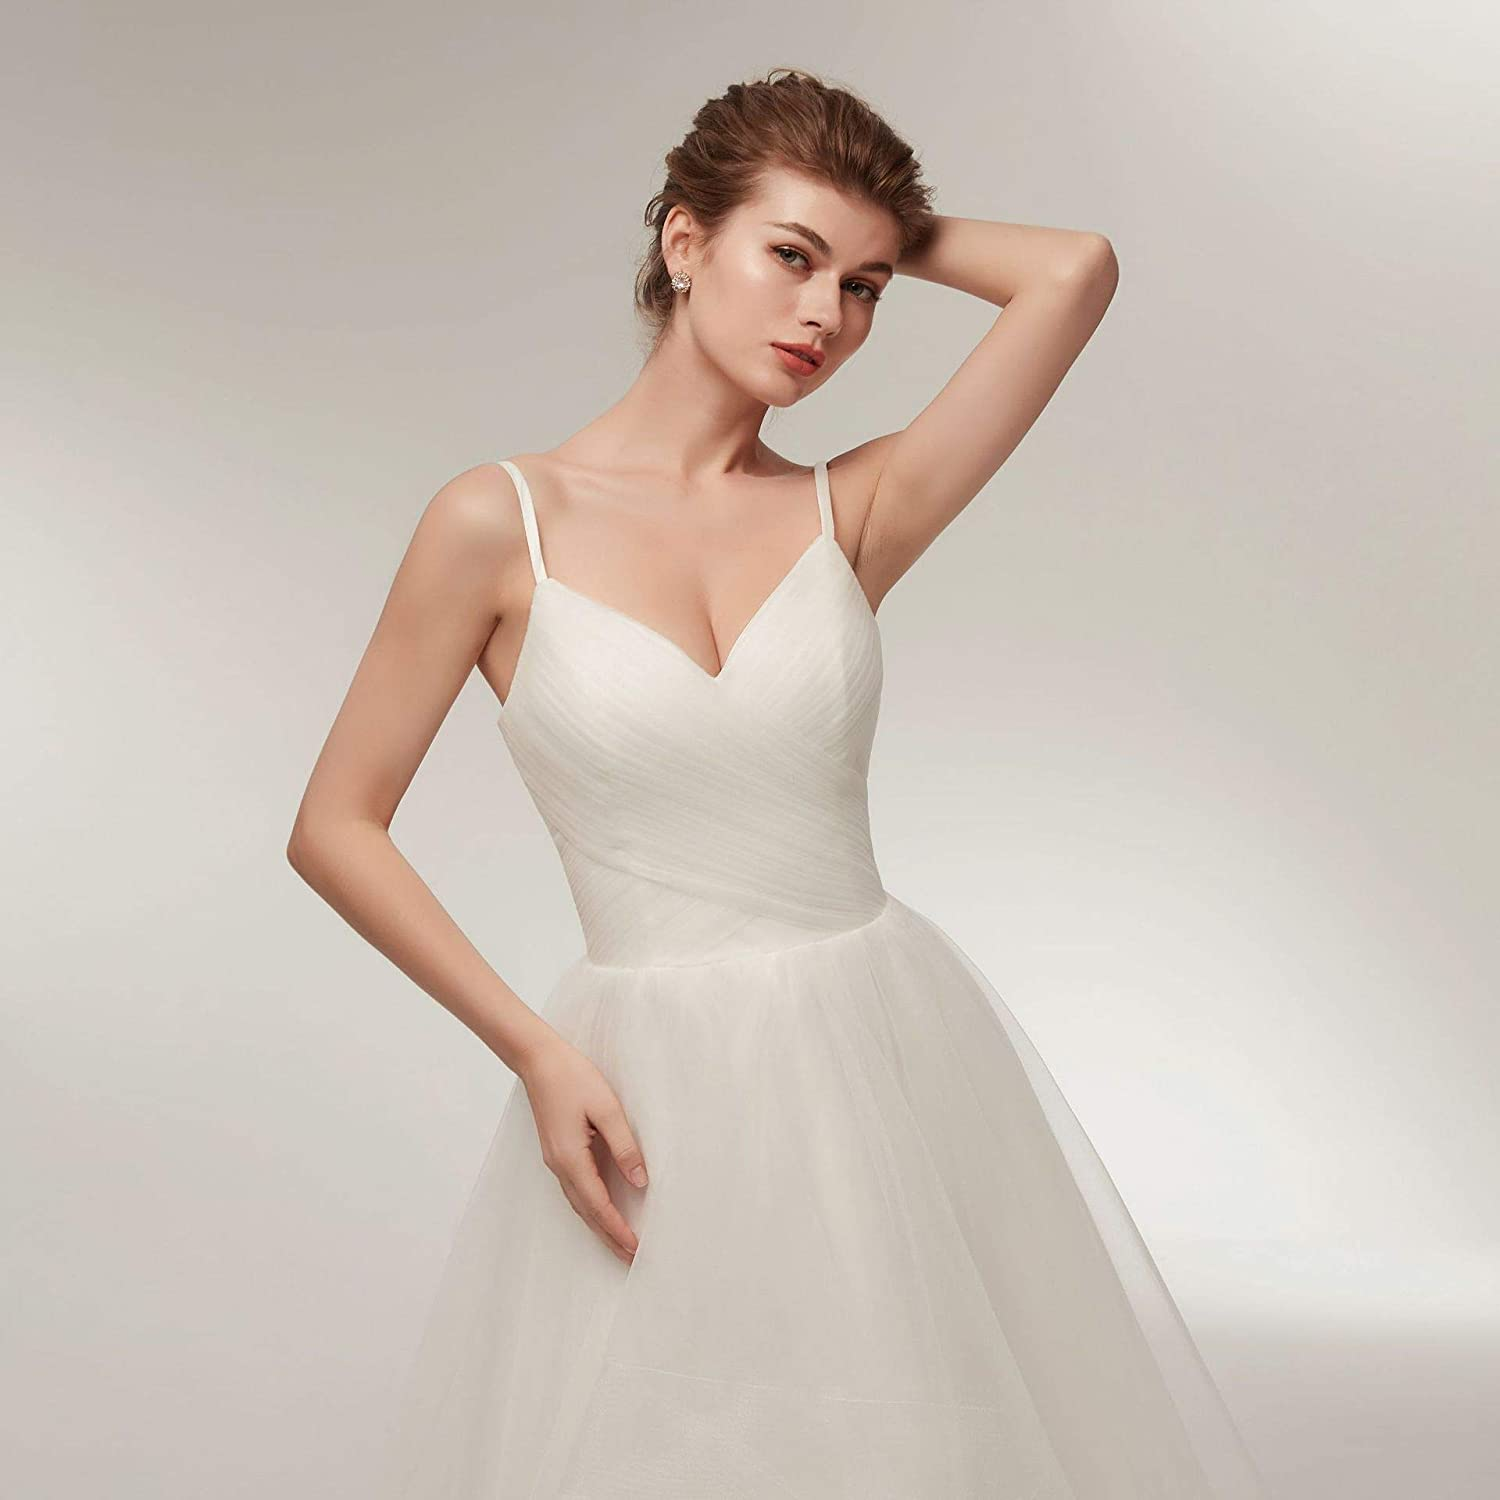 AMLUCASBRIDAL Women Party Wedding Dresses for Bride Long Bridal Guests Gown